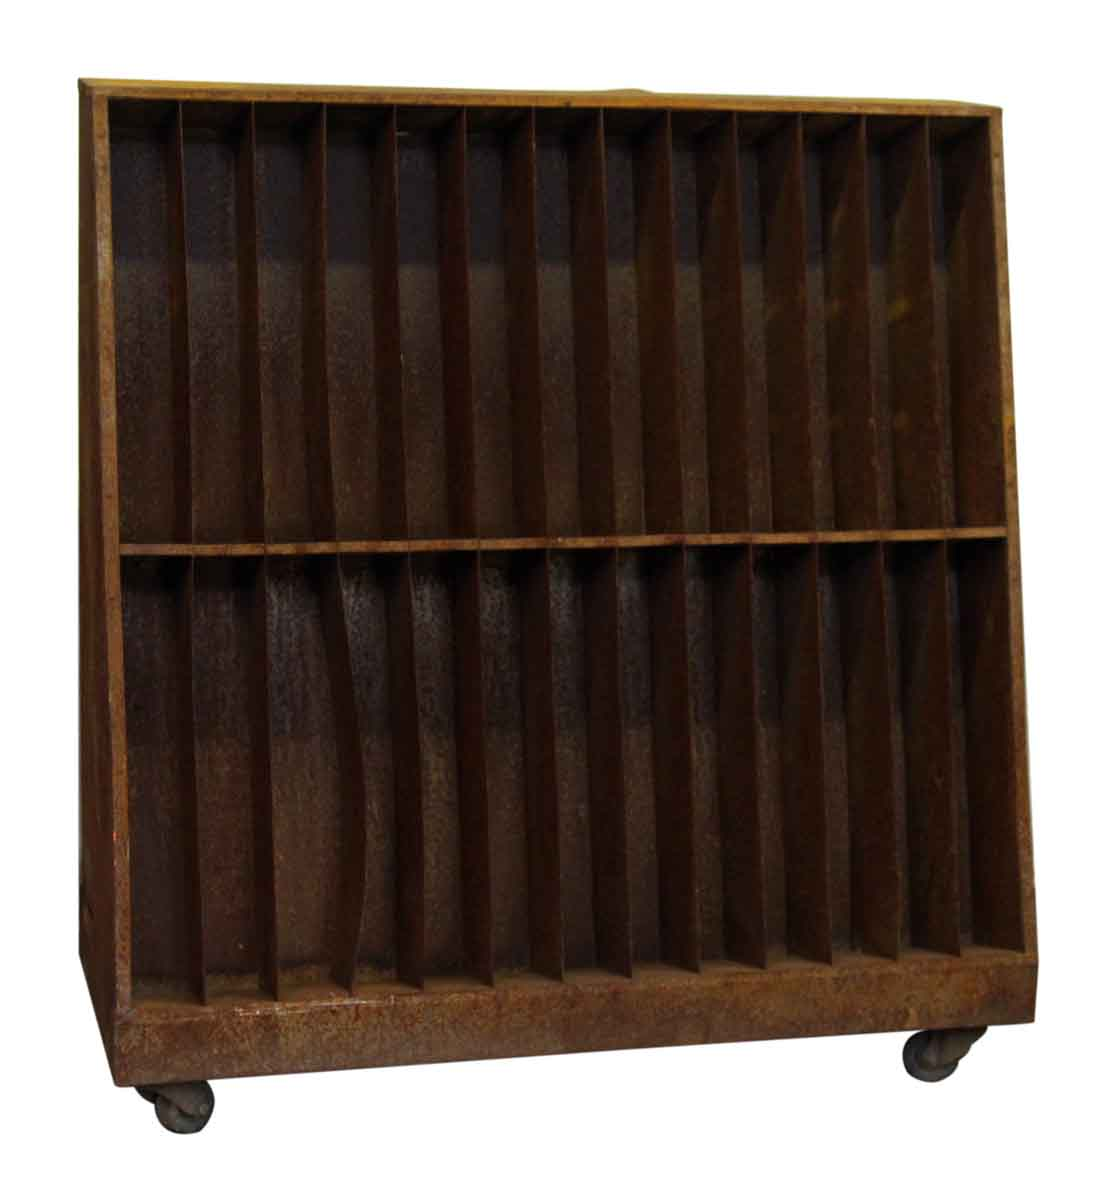 Industrial Rolling Cart With Storage Shelves Olde Good